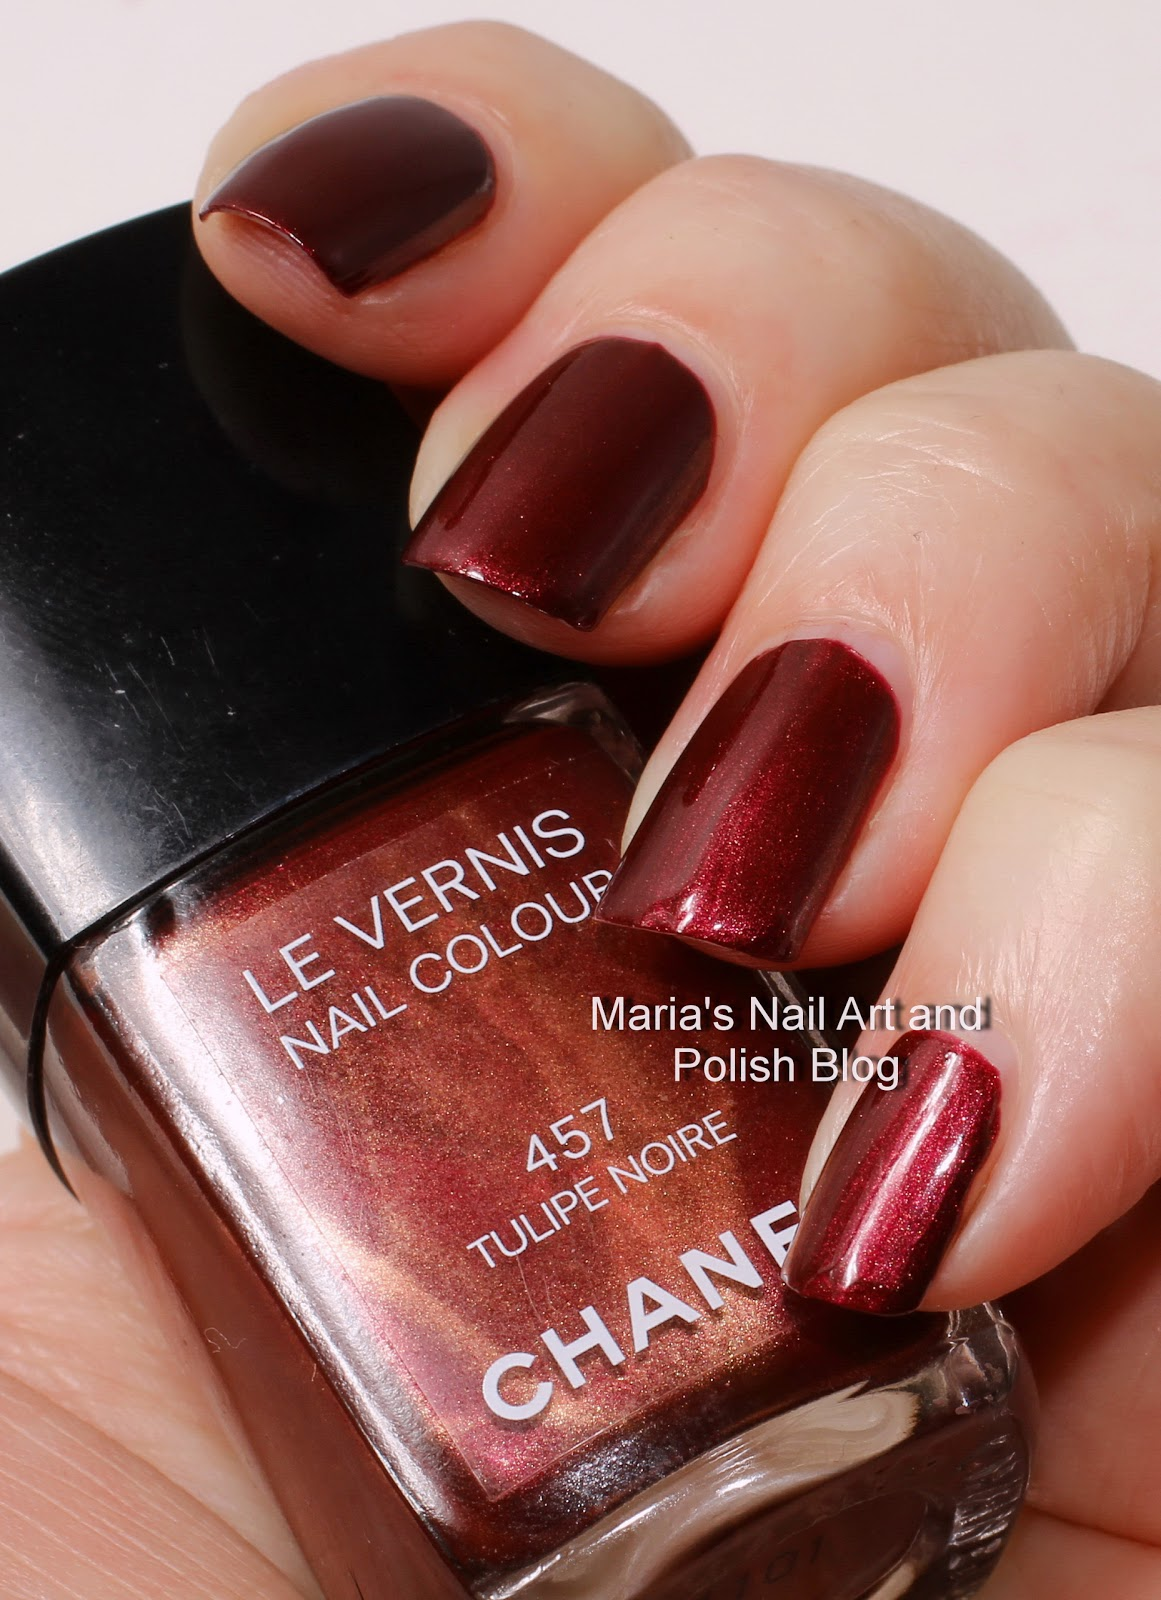 Marias Nail Art and Polish Blog: Chanel Tulipe Noire 457